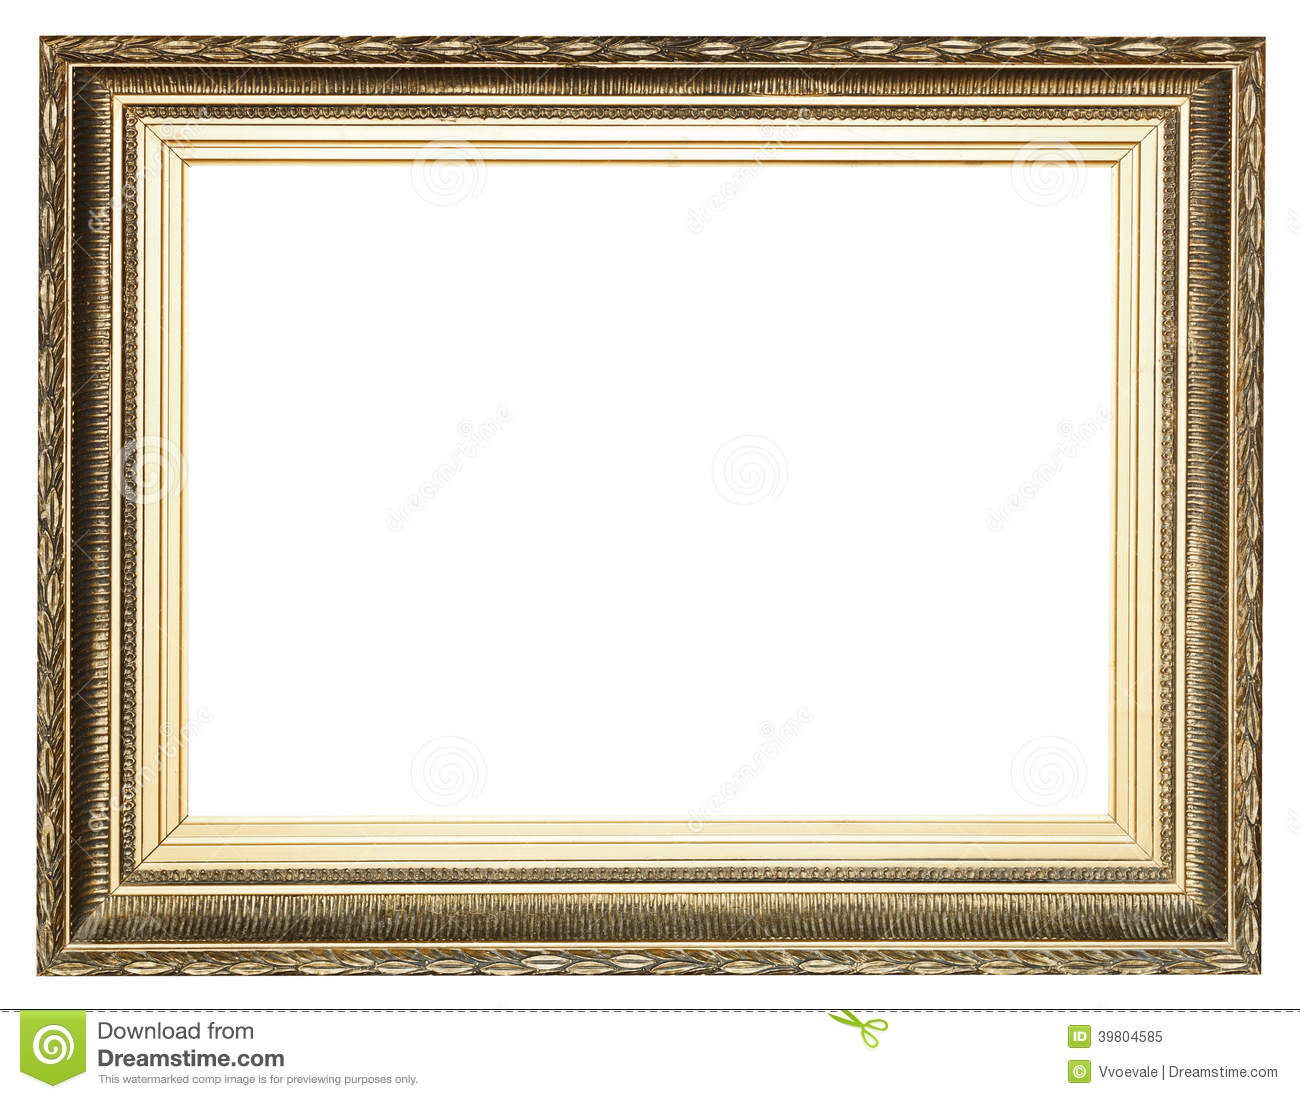 Big wide golden ancient wooden picture frame